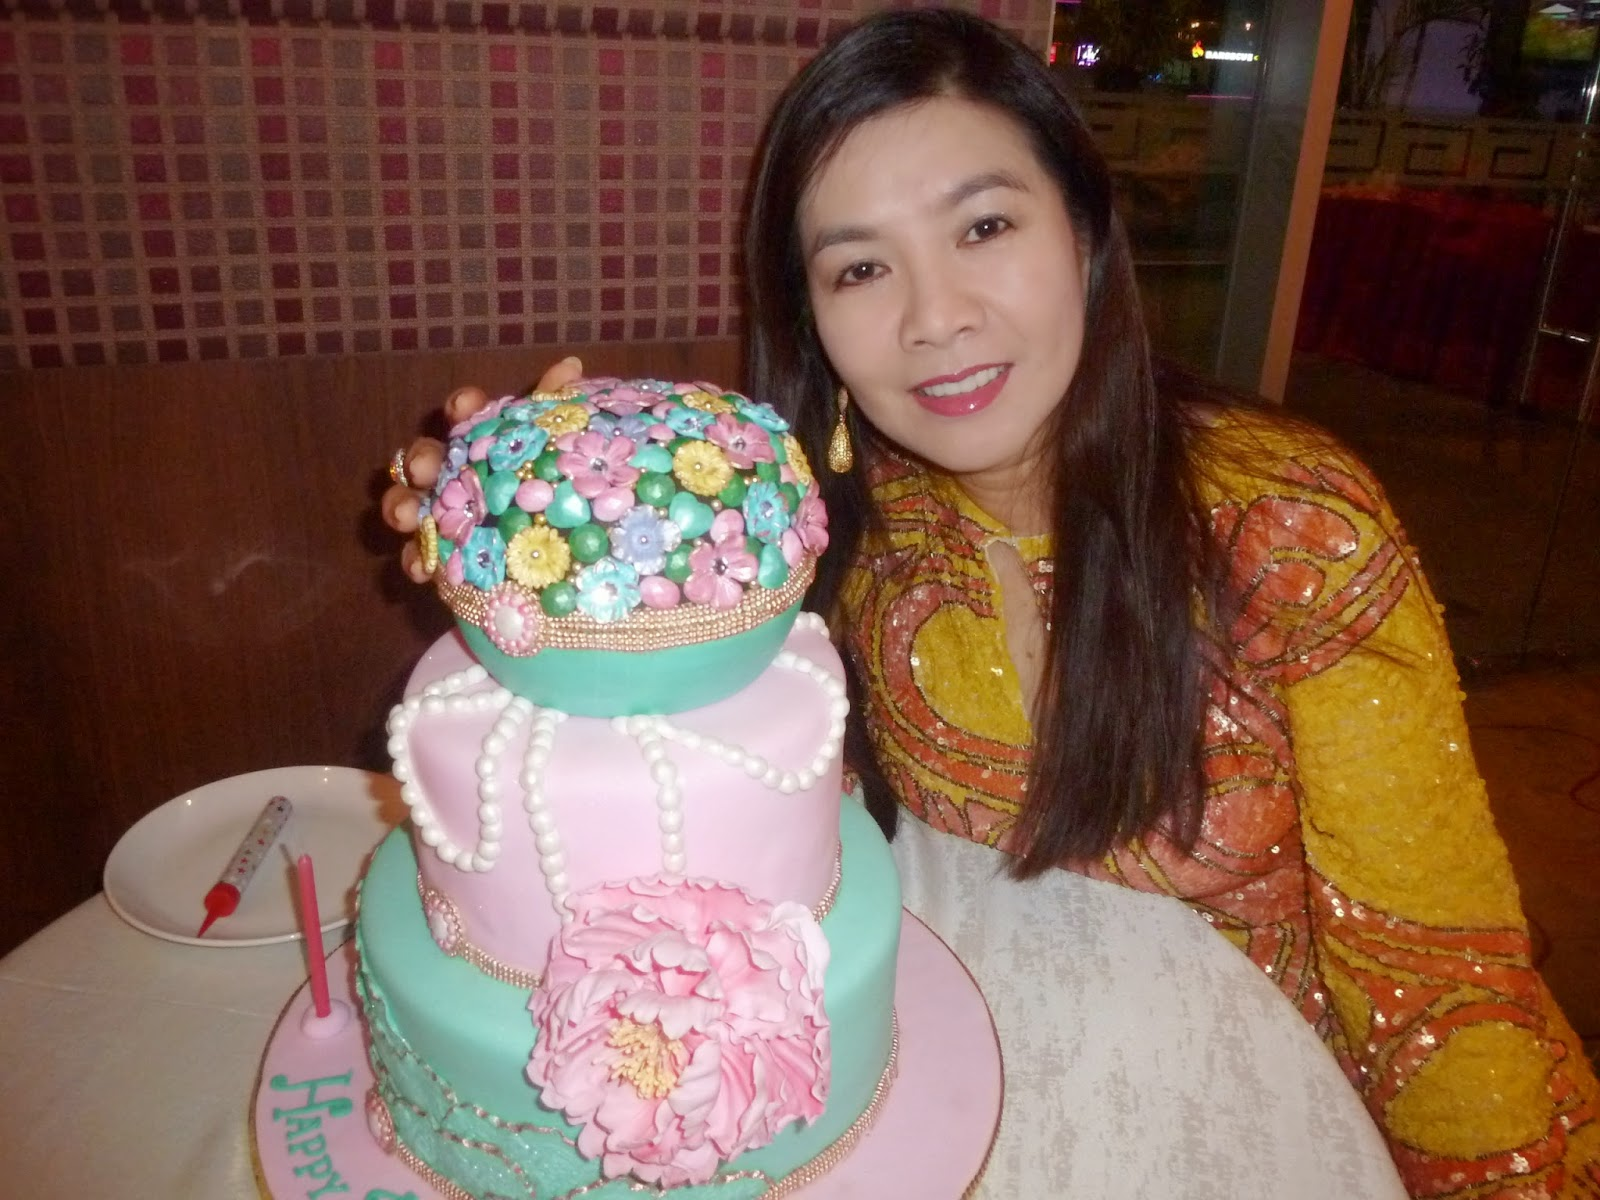 dato flora ong celebrates her birthday.